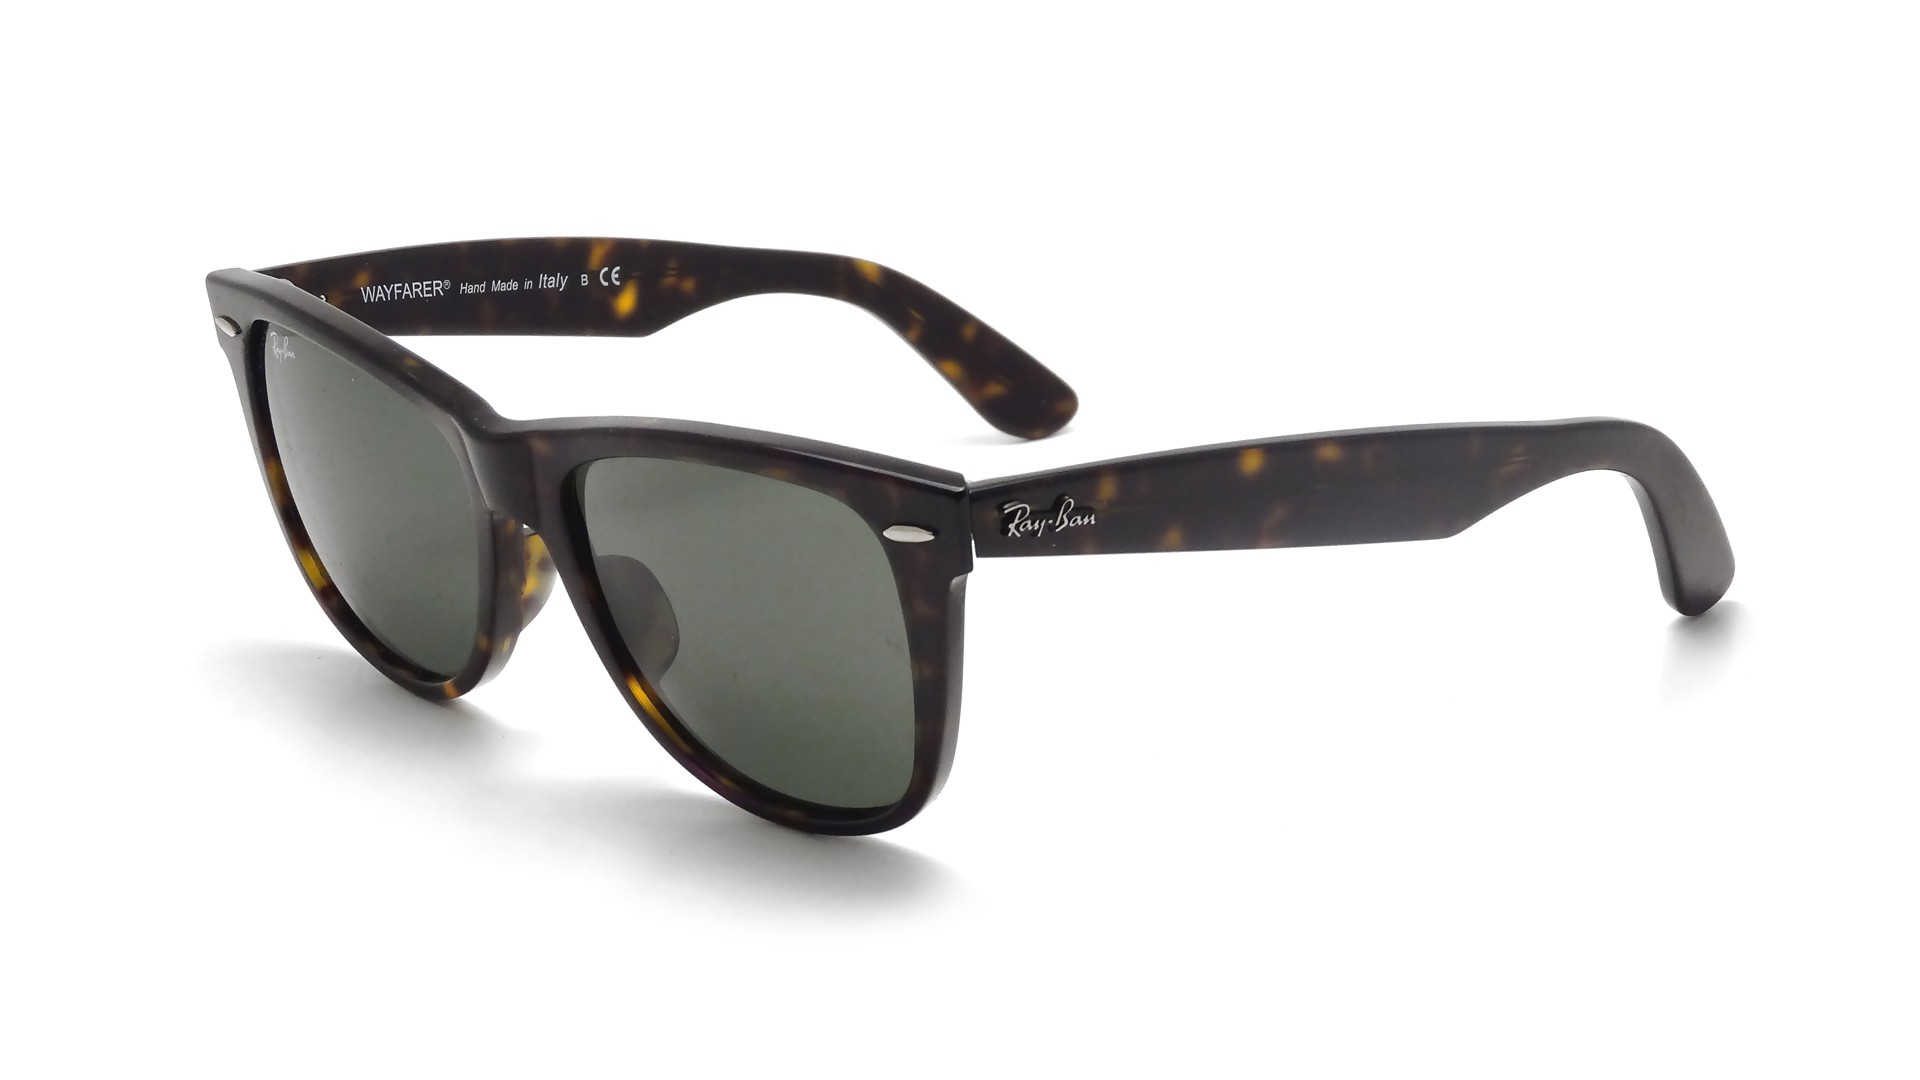 1529a7bf2a new style ray ban original wayfarer havana rb2140 902 54 18 visiofactory  ad8df 79604